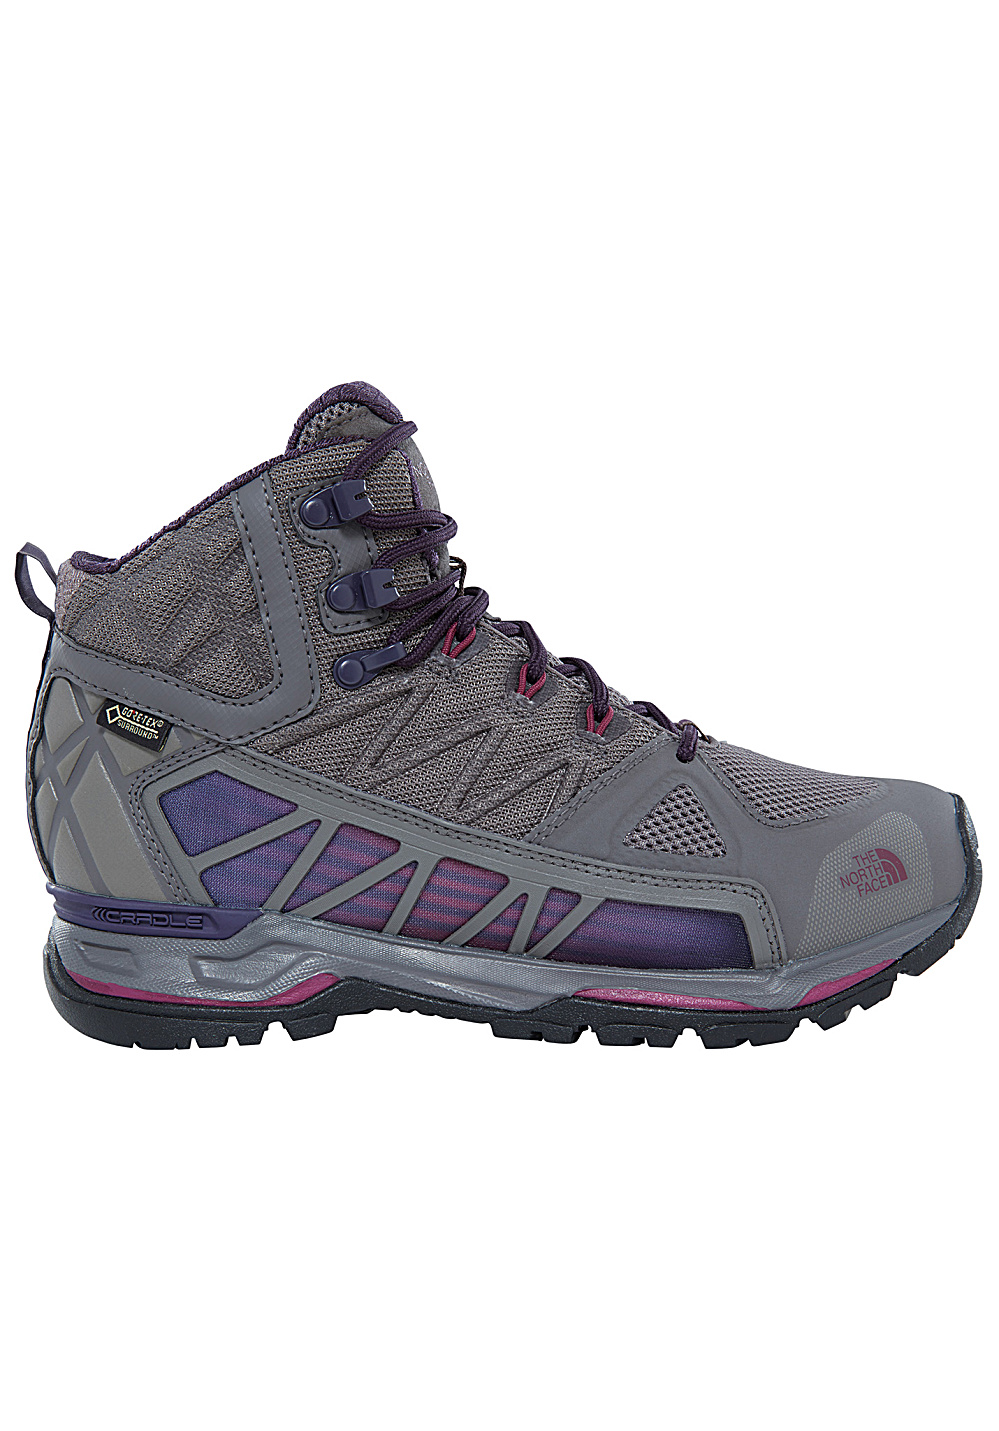 0ca54623d THE NORTH FACE Ultra GTX Surround Mid - Trekking Shoes for Women - Grey